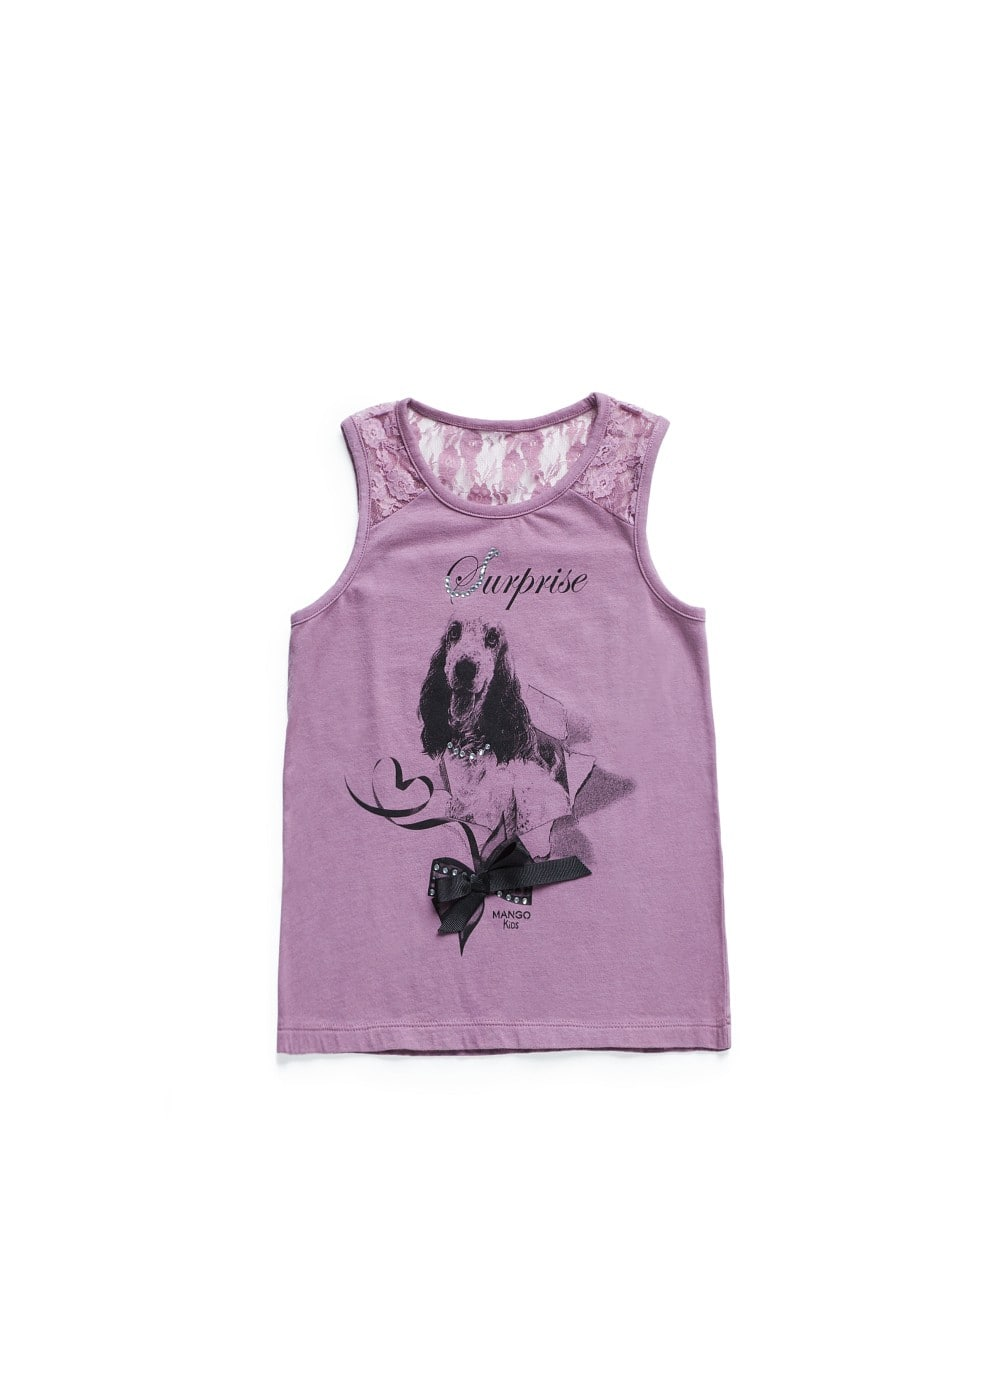 Camiseta estampada panel encaje | MANGO KIDS